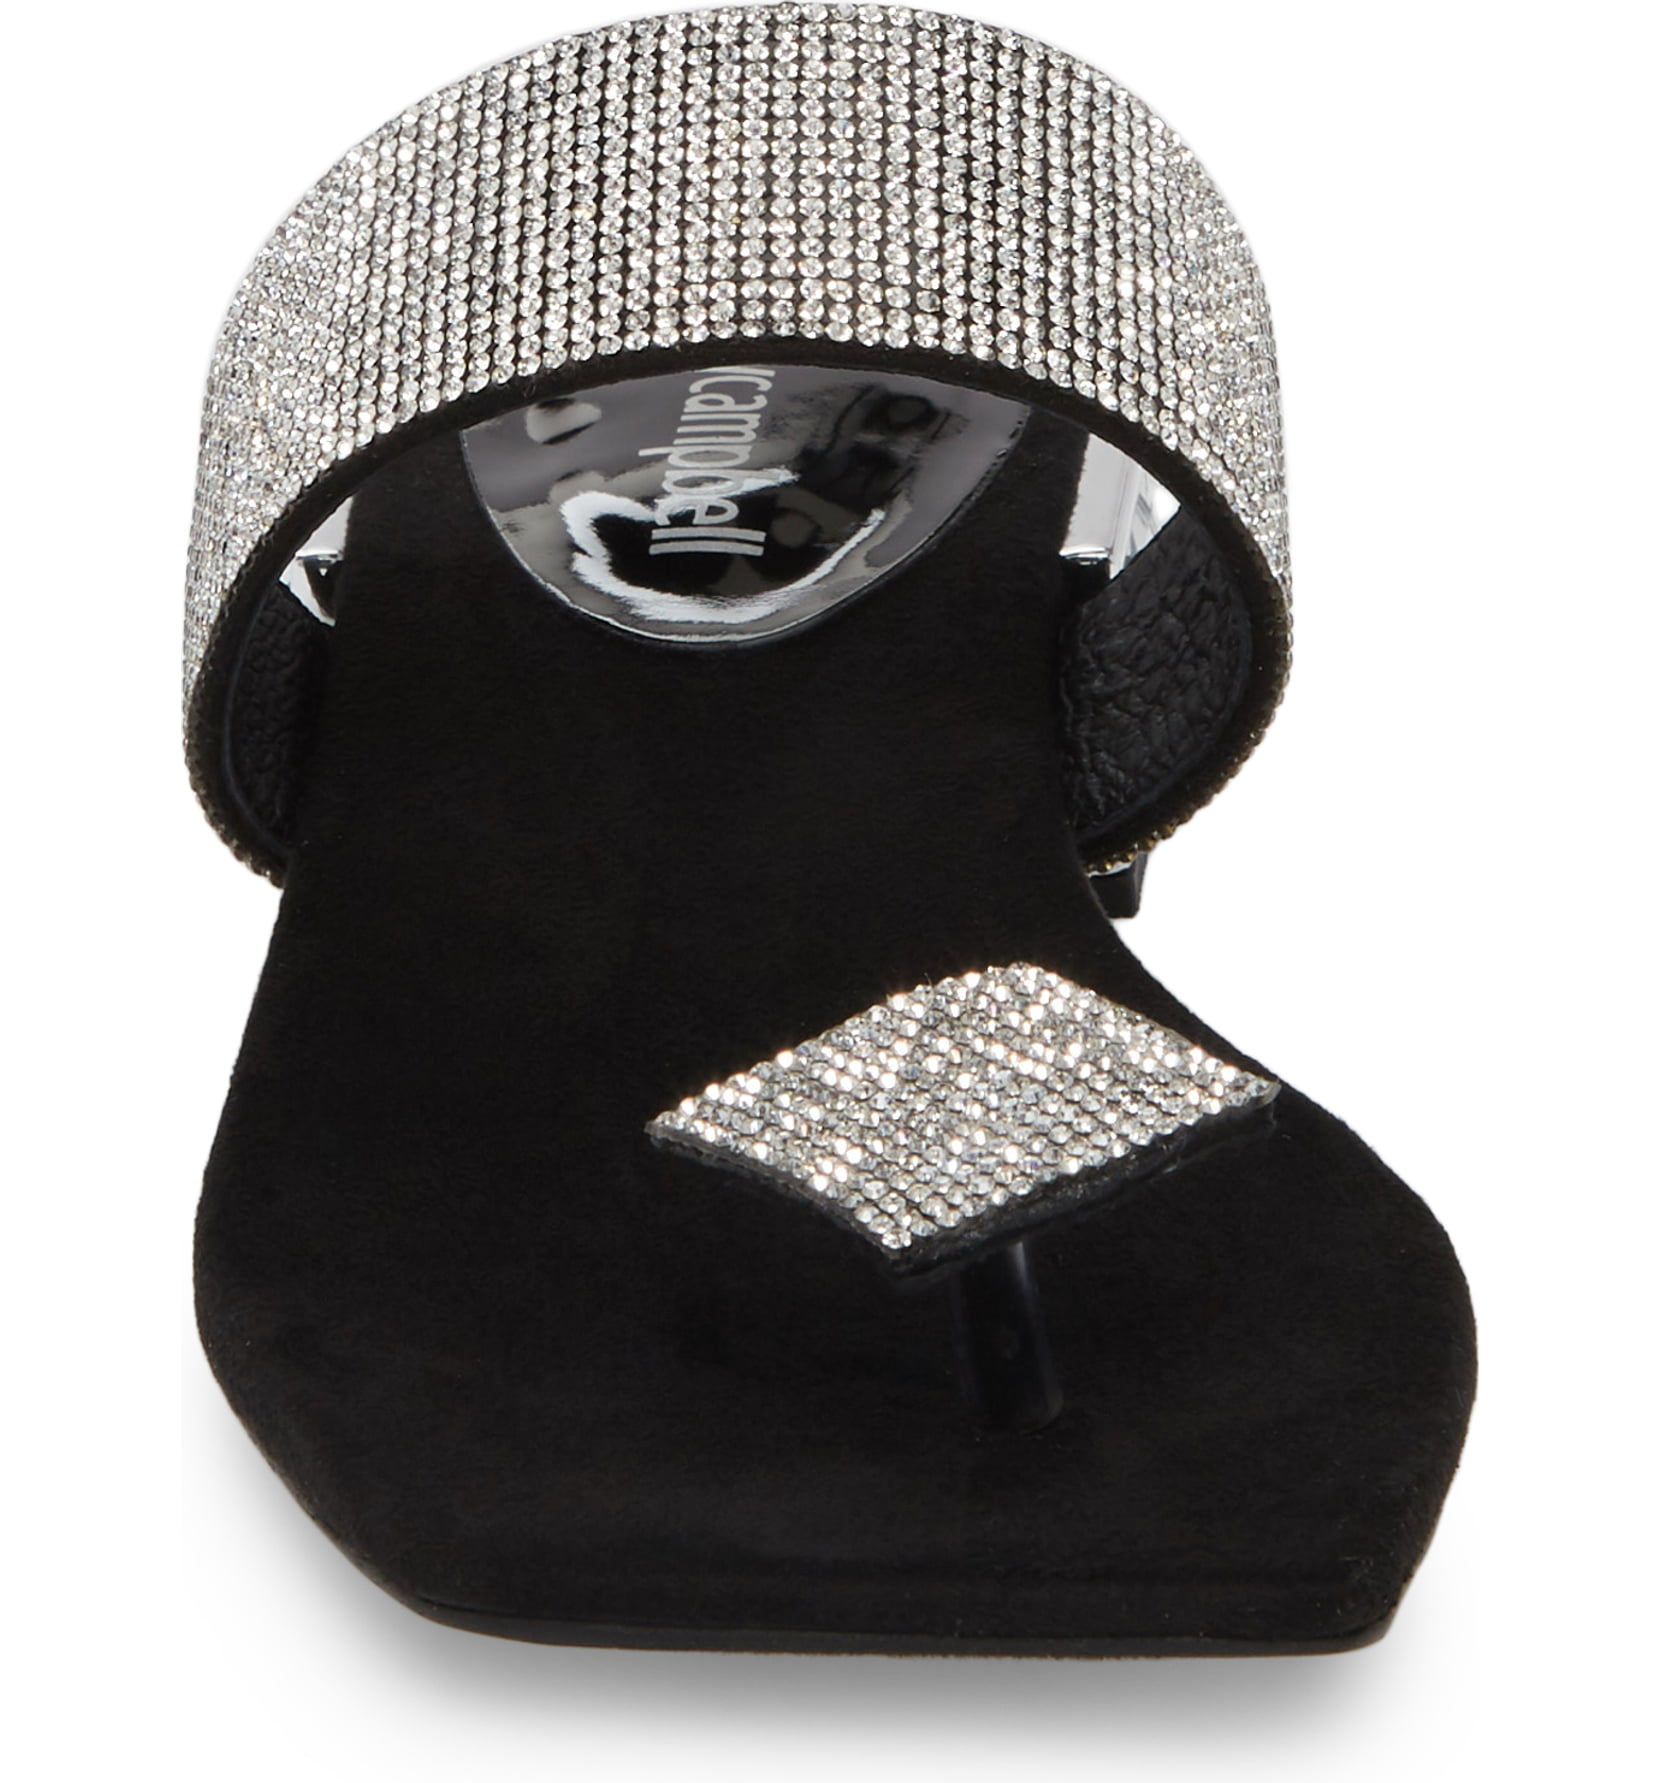 Jeffery-Campbell-ALISE-SH-Black-Silver-Embellished-Sandal-Jeweled-Square-Heel thumbnail 19